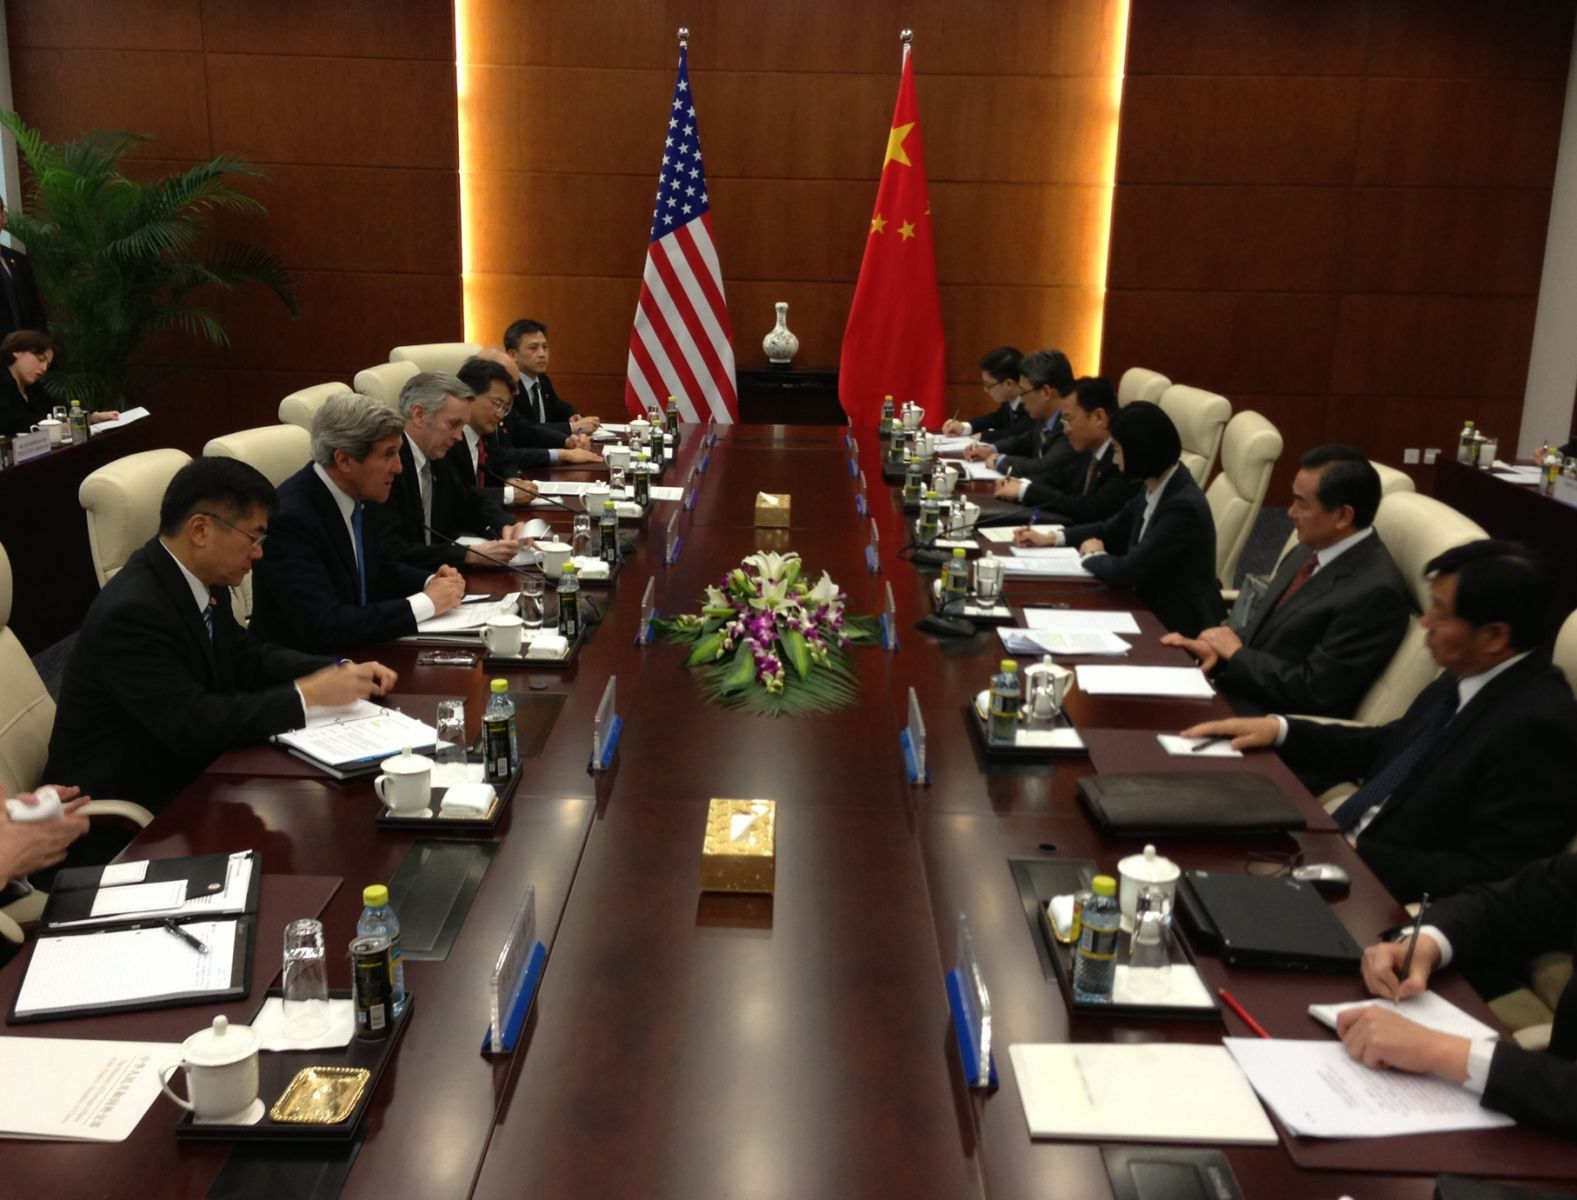 U.S._Secretary_of_State_John_Kerry_speaks_with_Chinese_Foreign_Minister_Wang_Yi_at_the_beginning_of_a_bilateral_meeting_in_Beijing,_China,_on_April_13,_2013.jpg